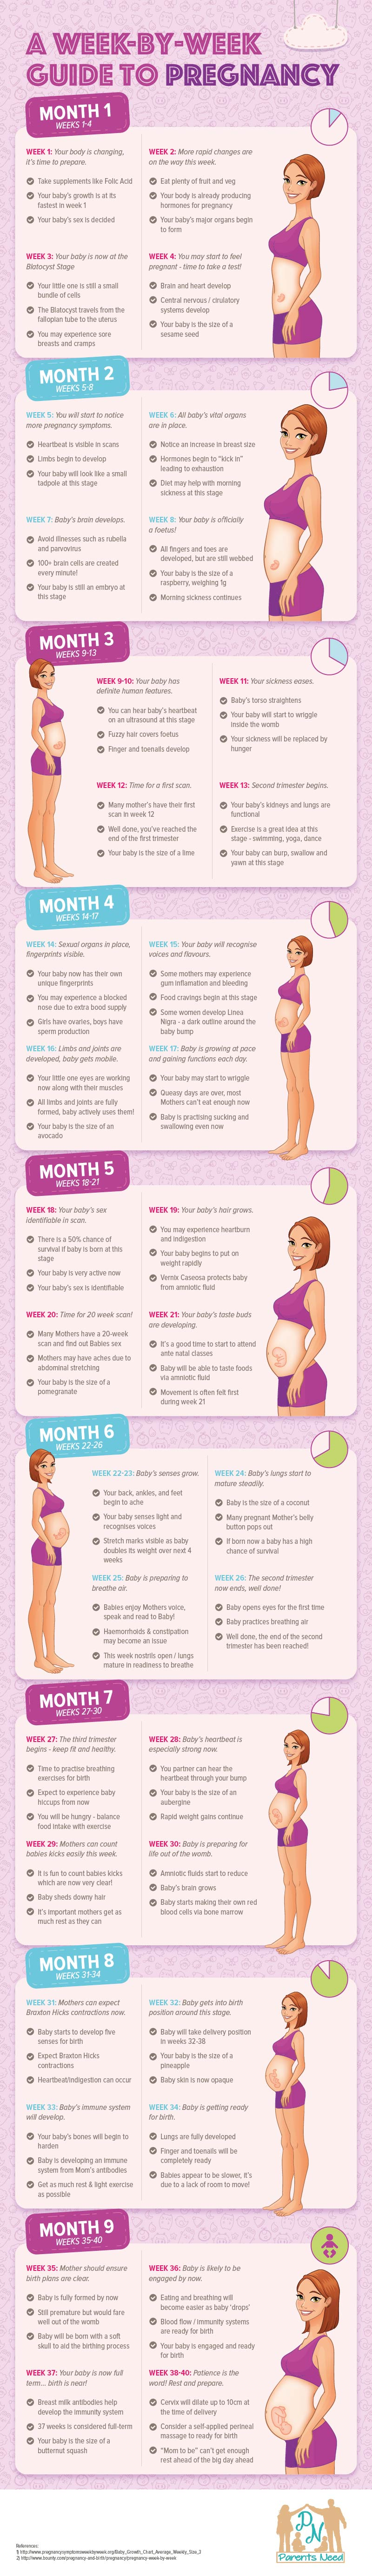 A Week by Week Guide to Pregnancy by ParentsNeed